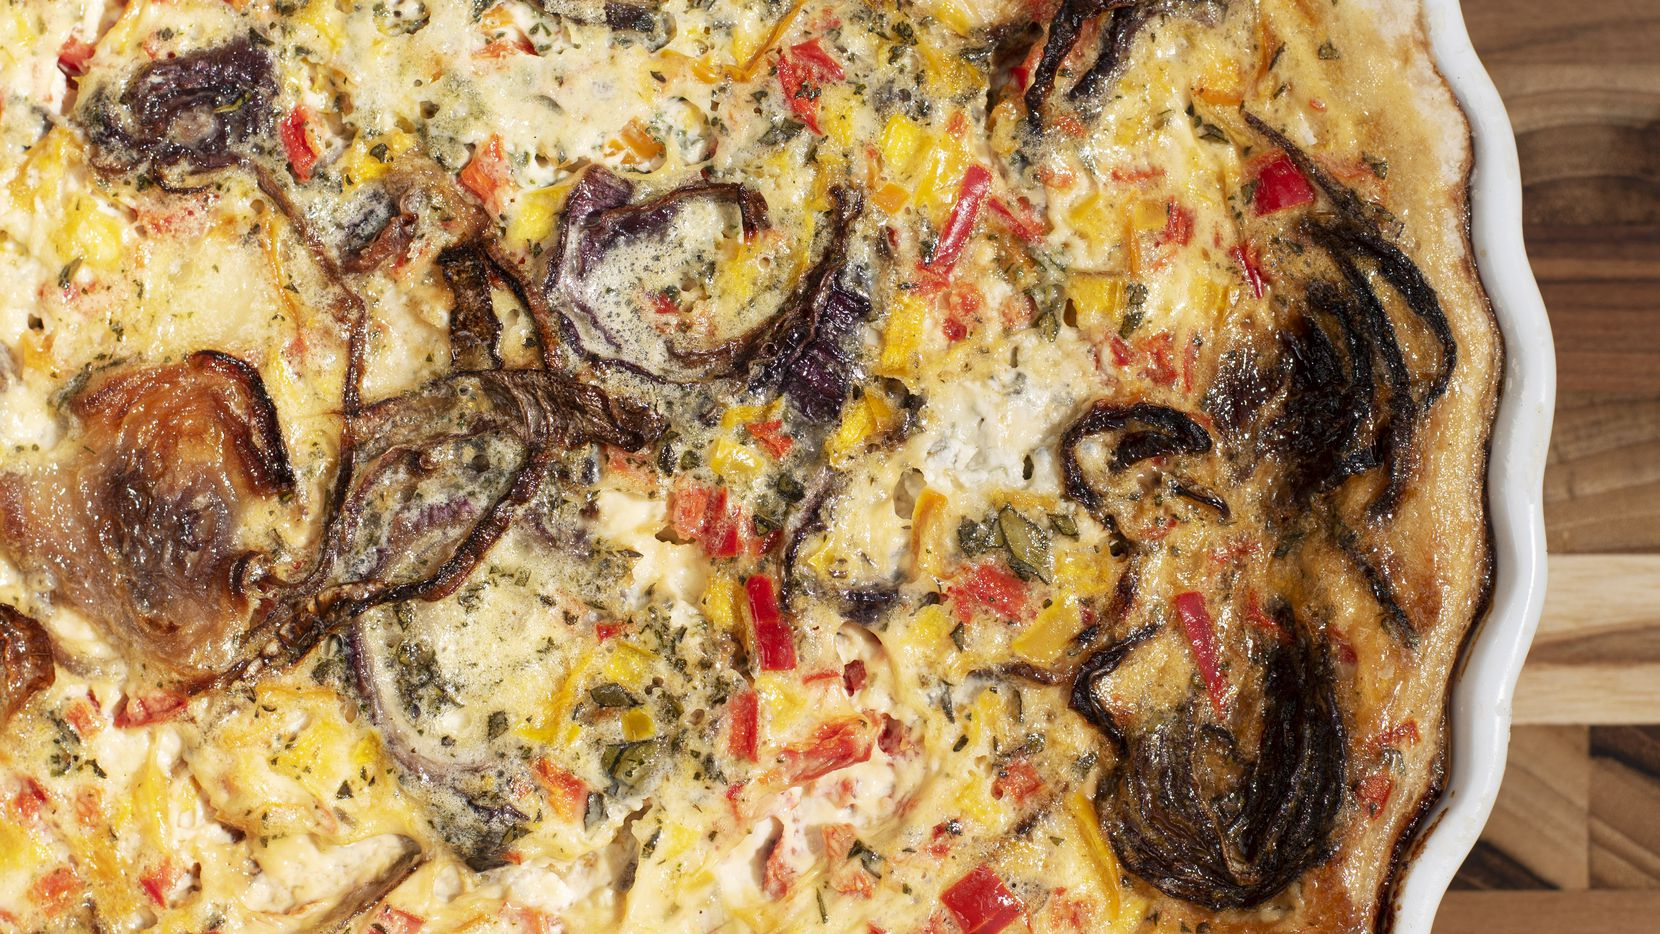 Gorgonzola With Roasted Red Onions and Colored Pepper Quiche